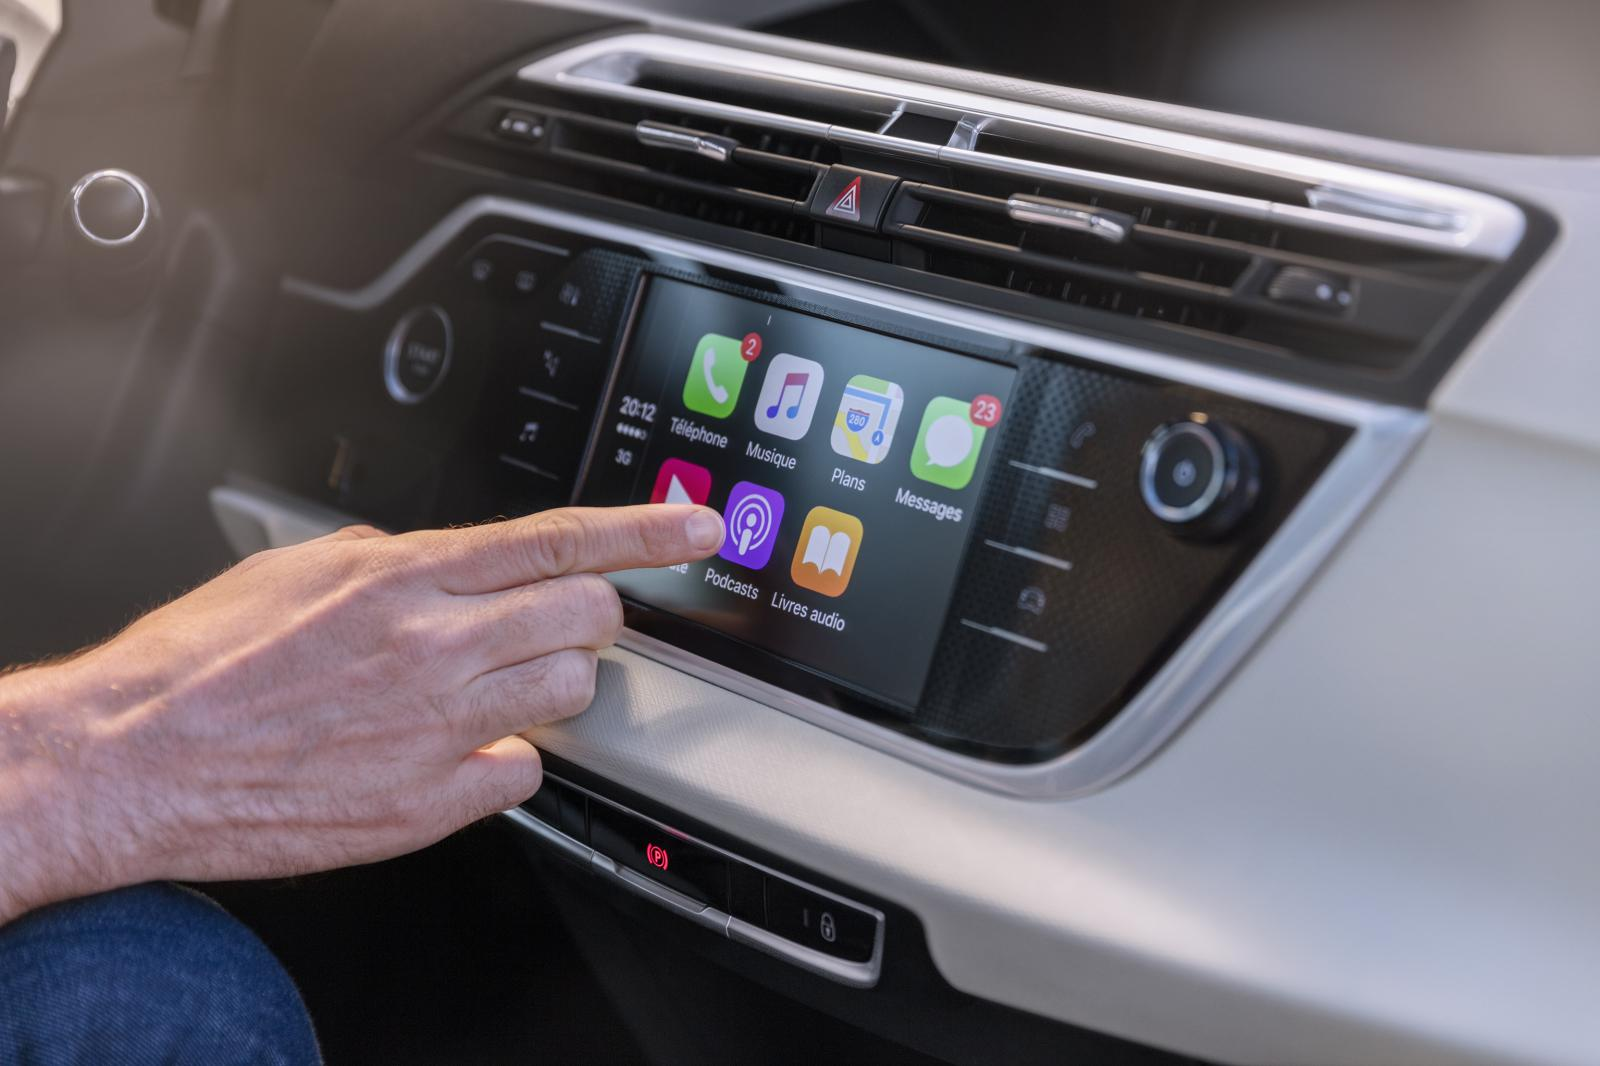 Grand C4 Picasso Shine 2016 tableau tactile